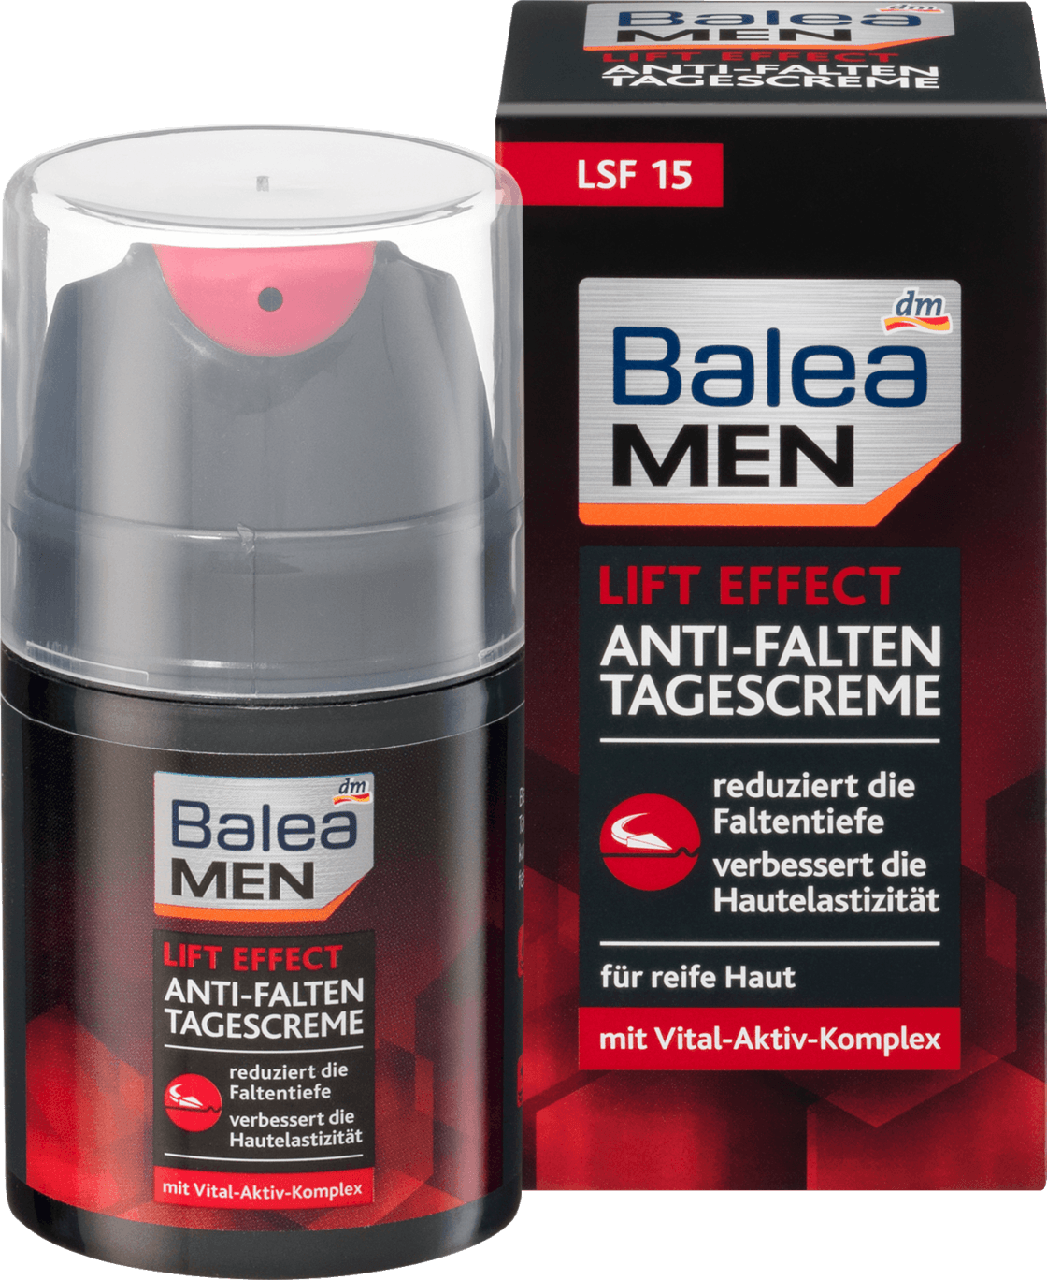 Дневной крем для лица Balea men Lift Effect Anti-Falten, 50 мл., фото 1